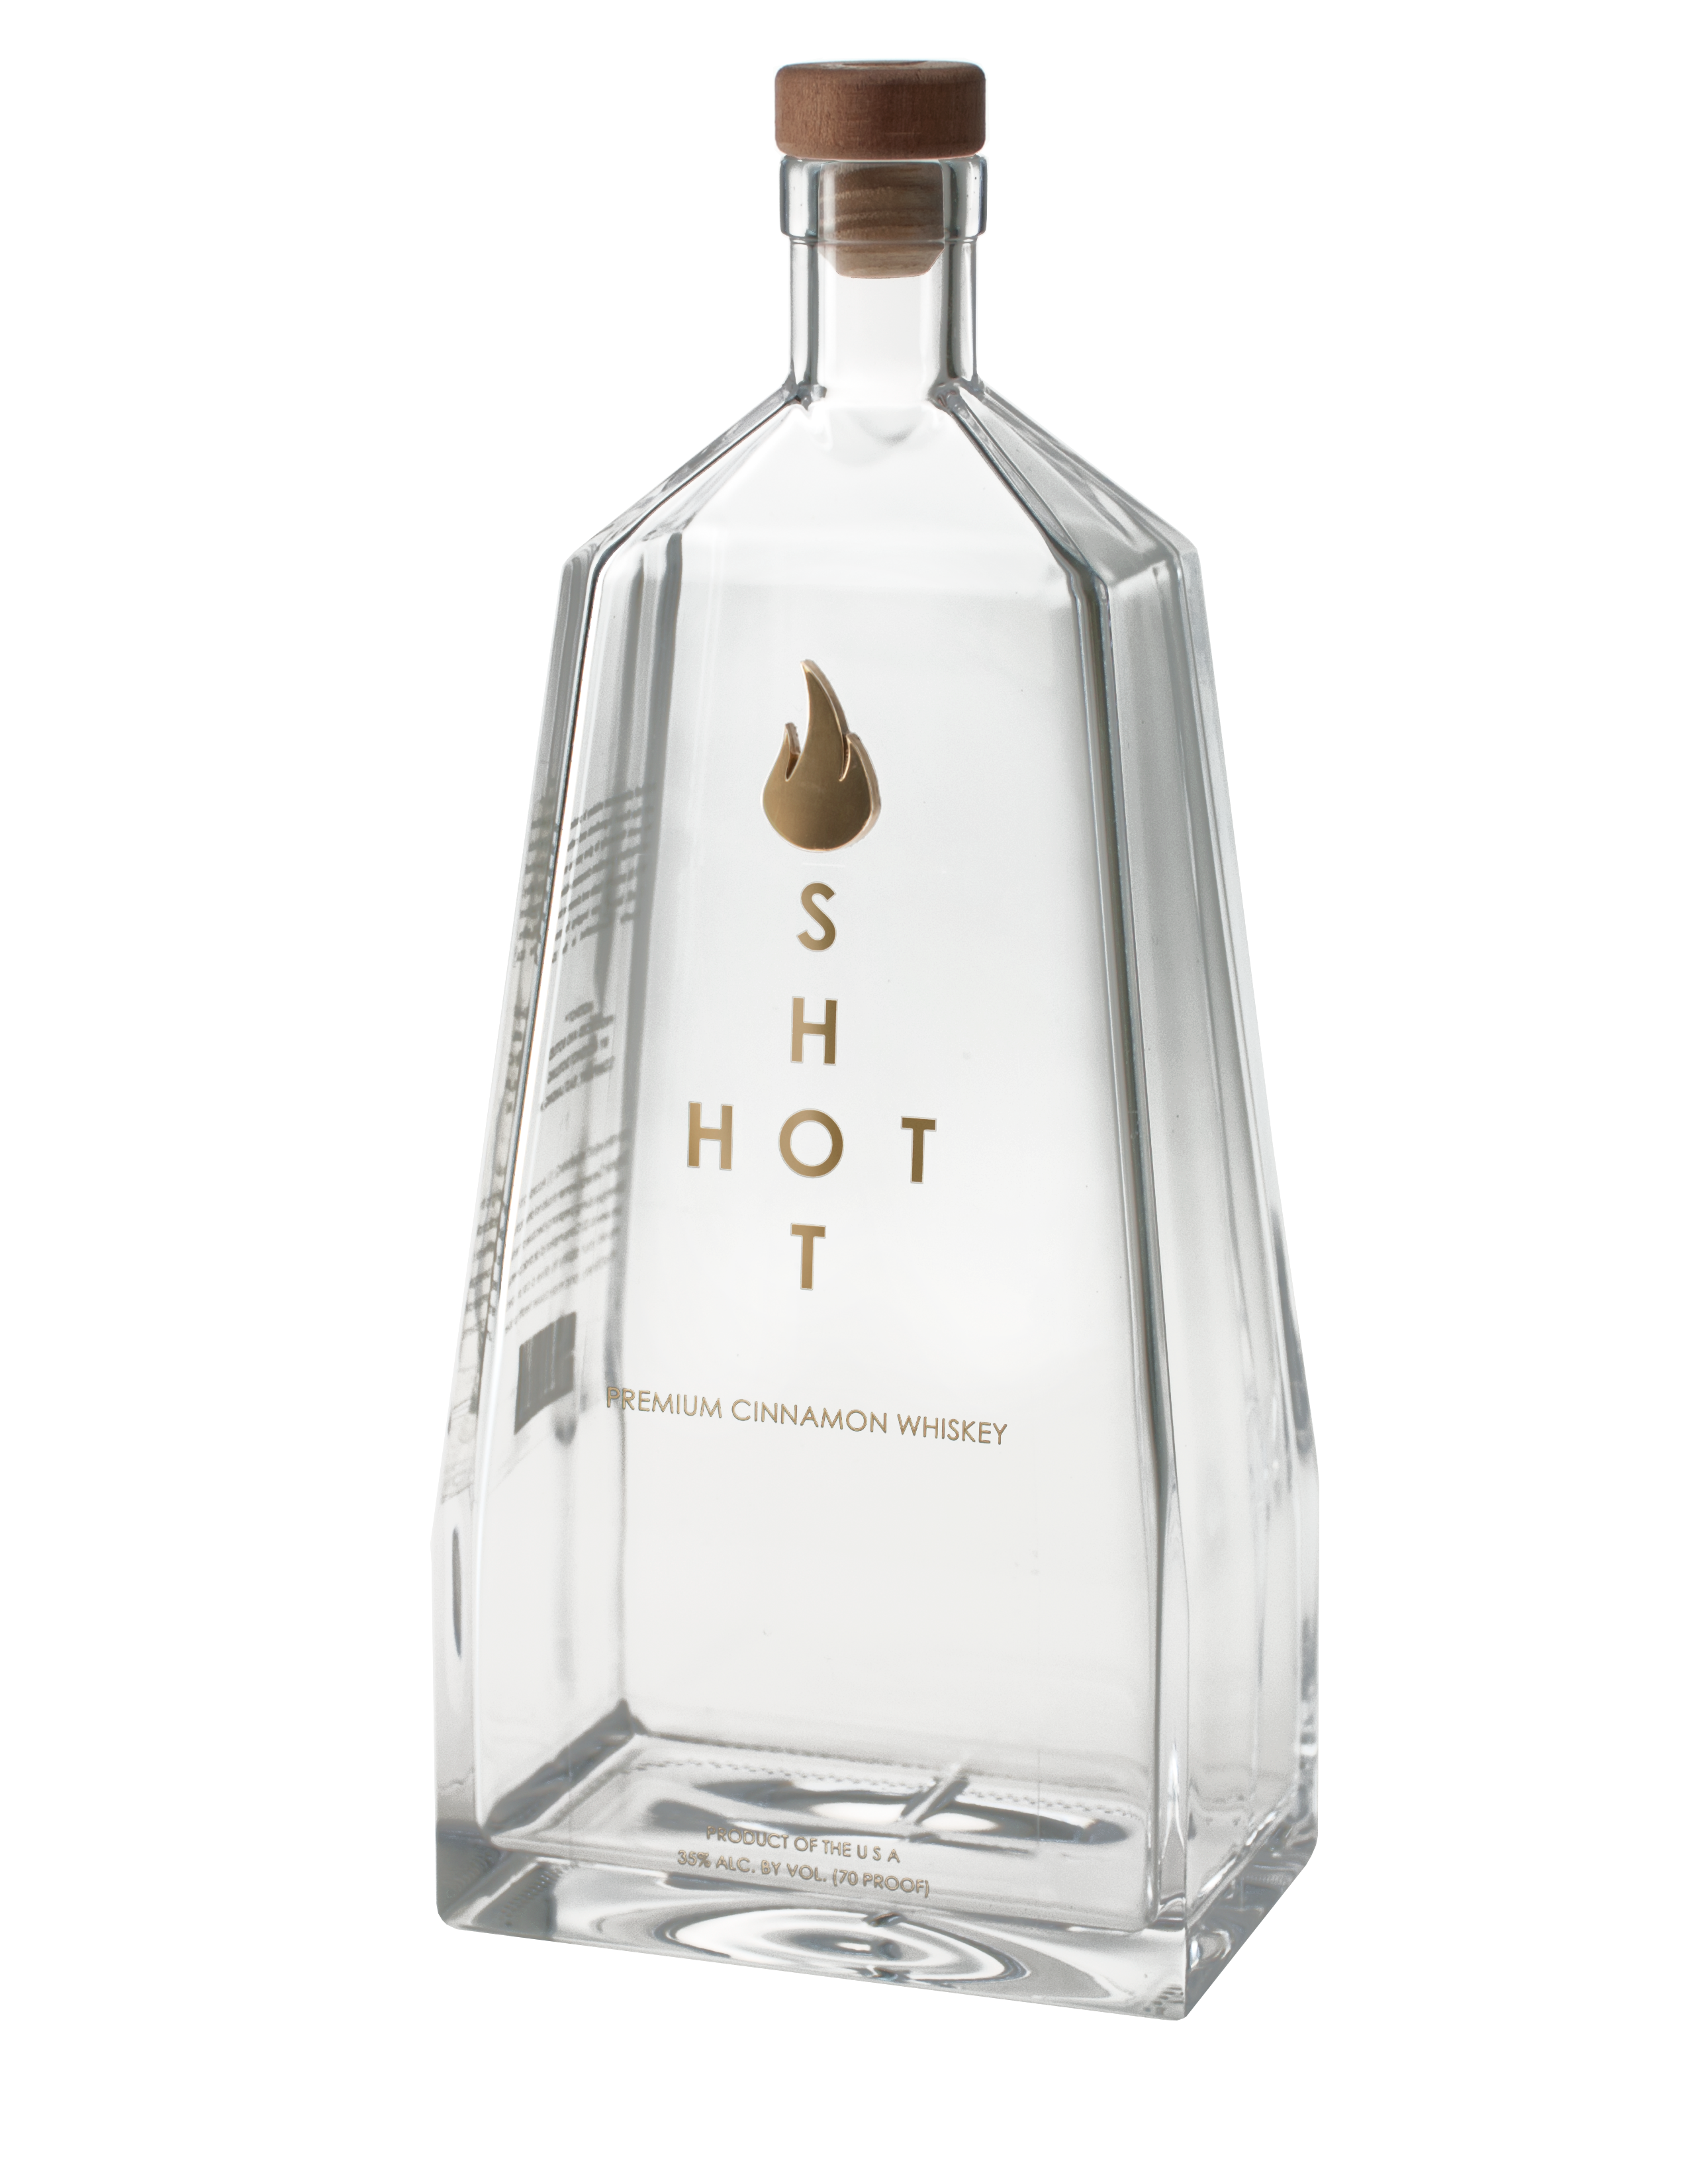 HotShot Bottle Label side